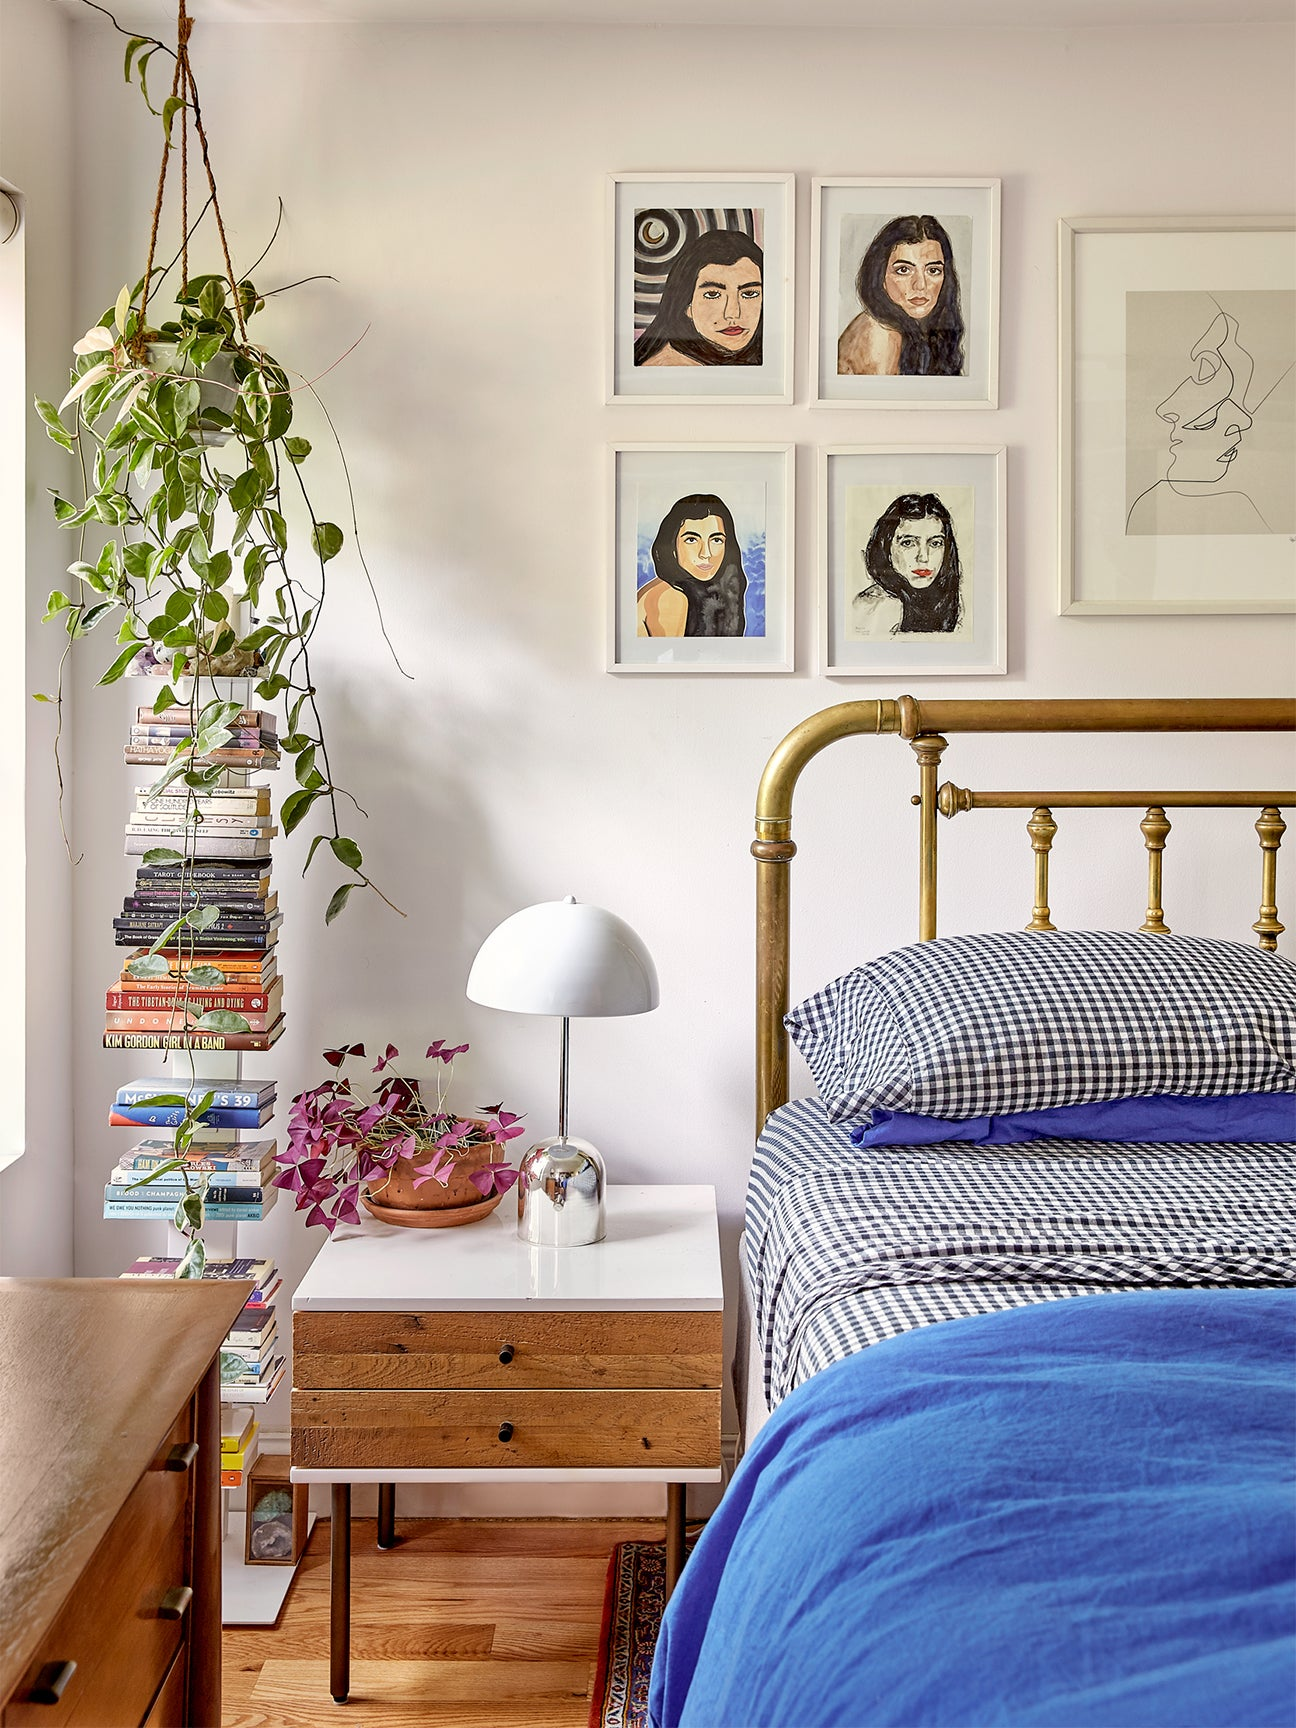 bed with blue sheets, hanging plant, and gallery wall